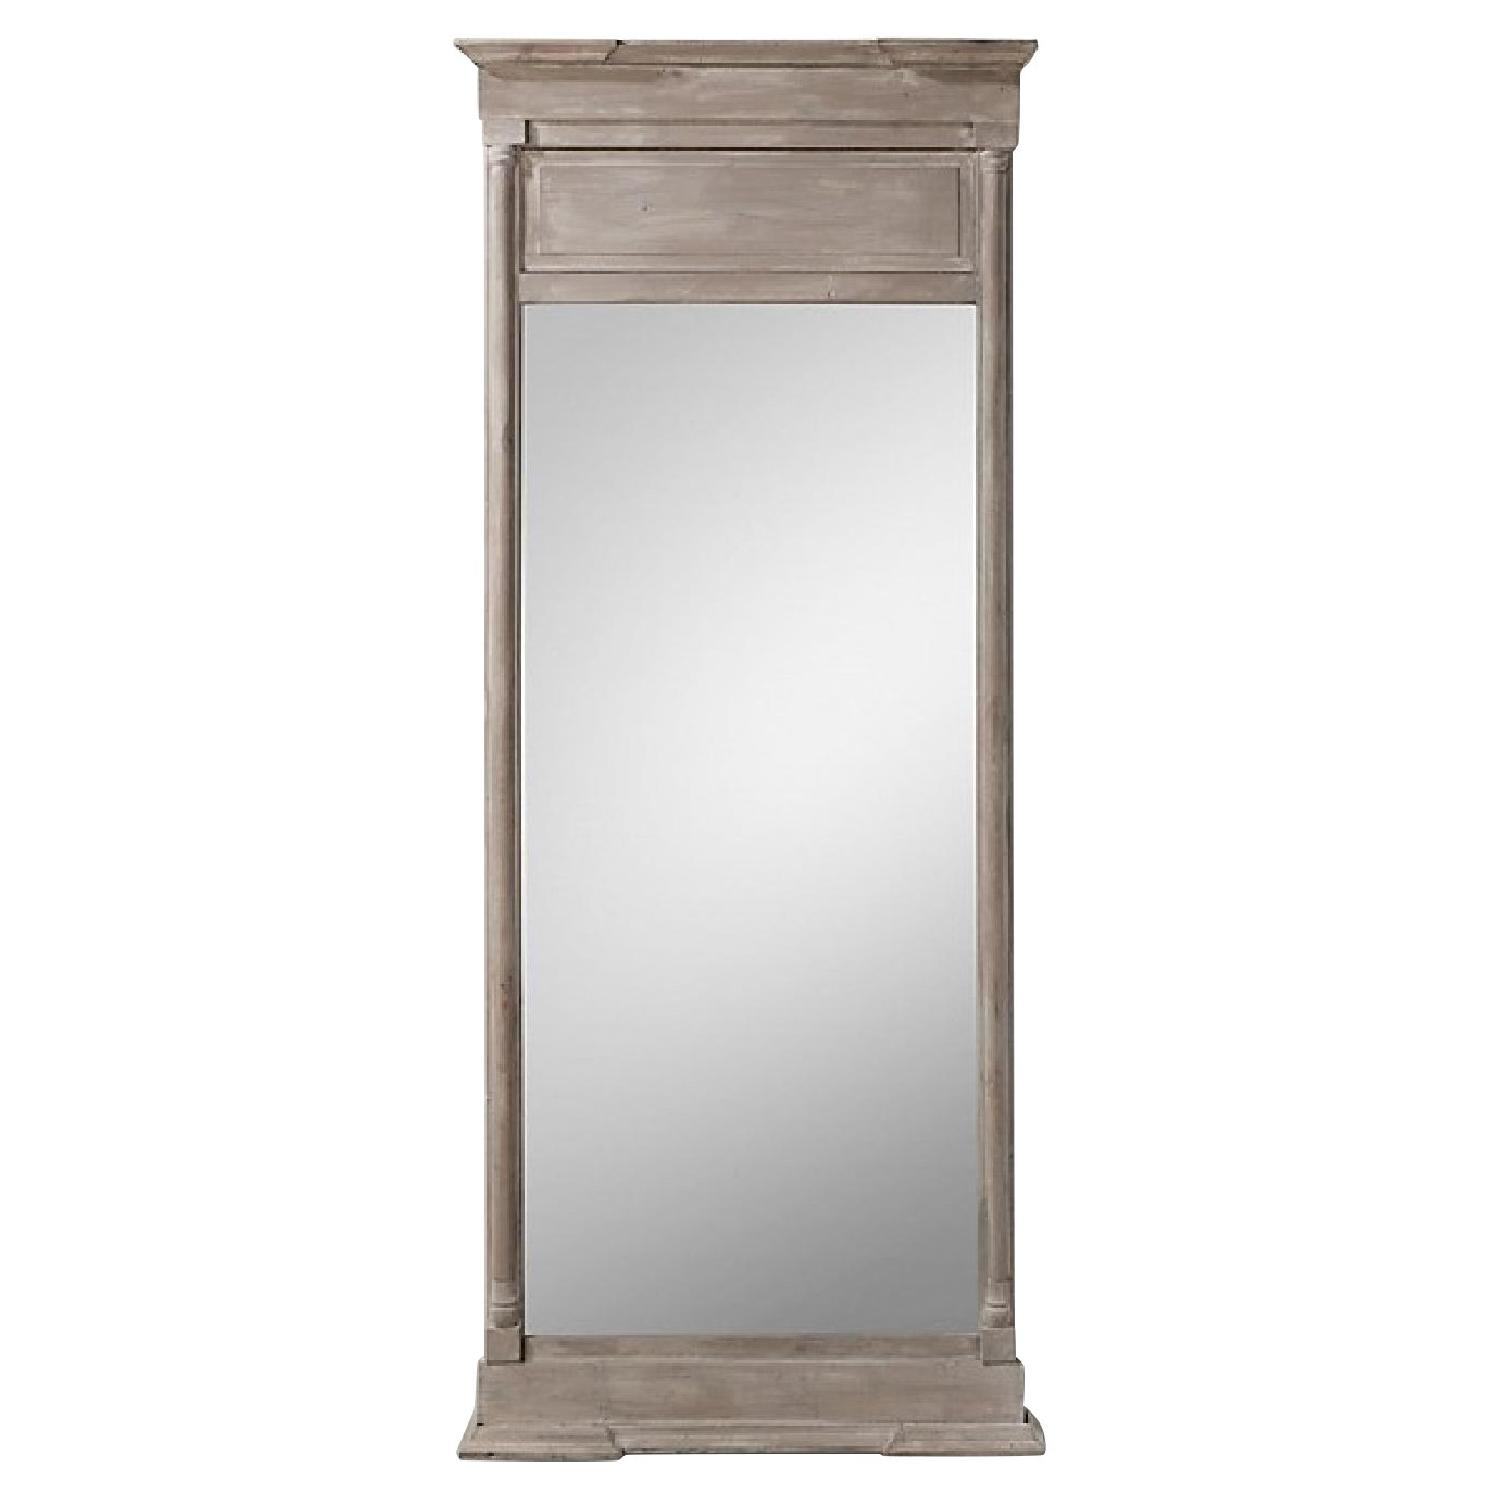 Restoration Hardware Full Length Wall Mirror